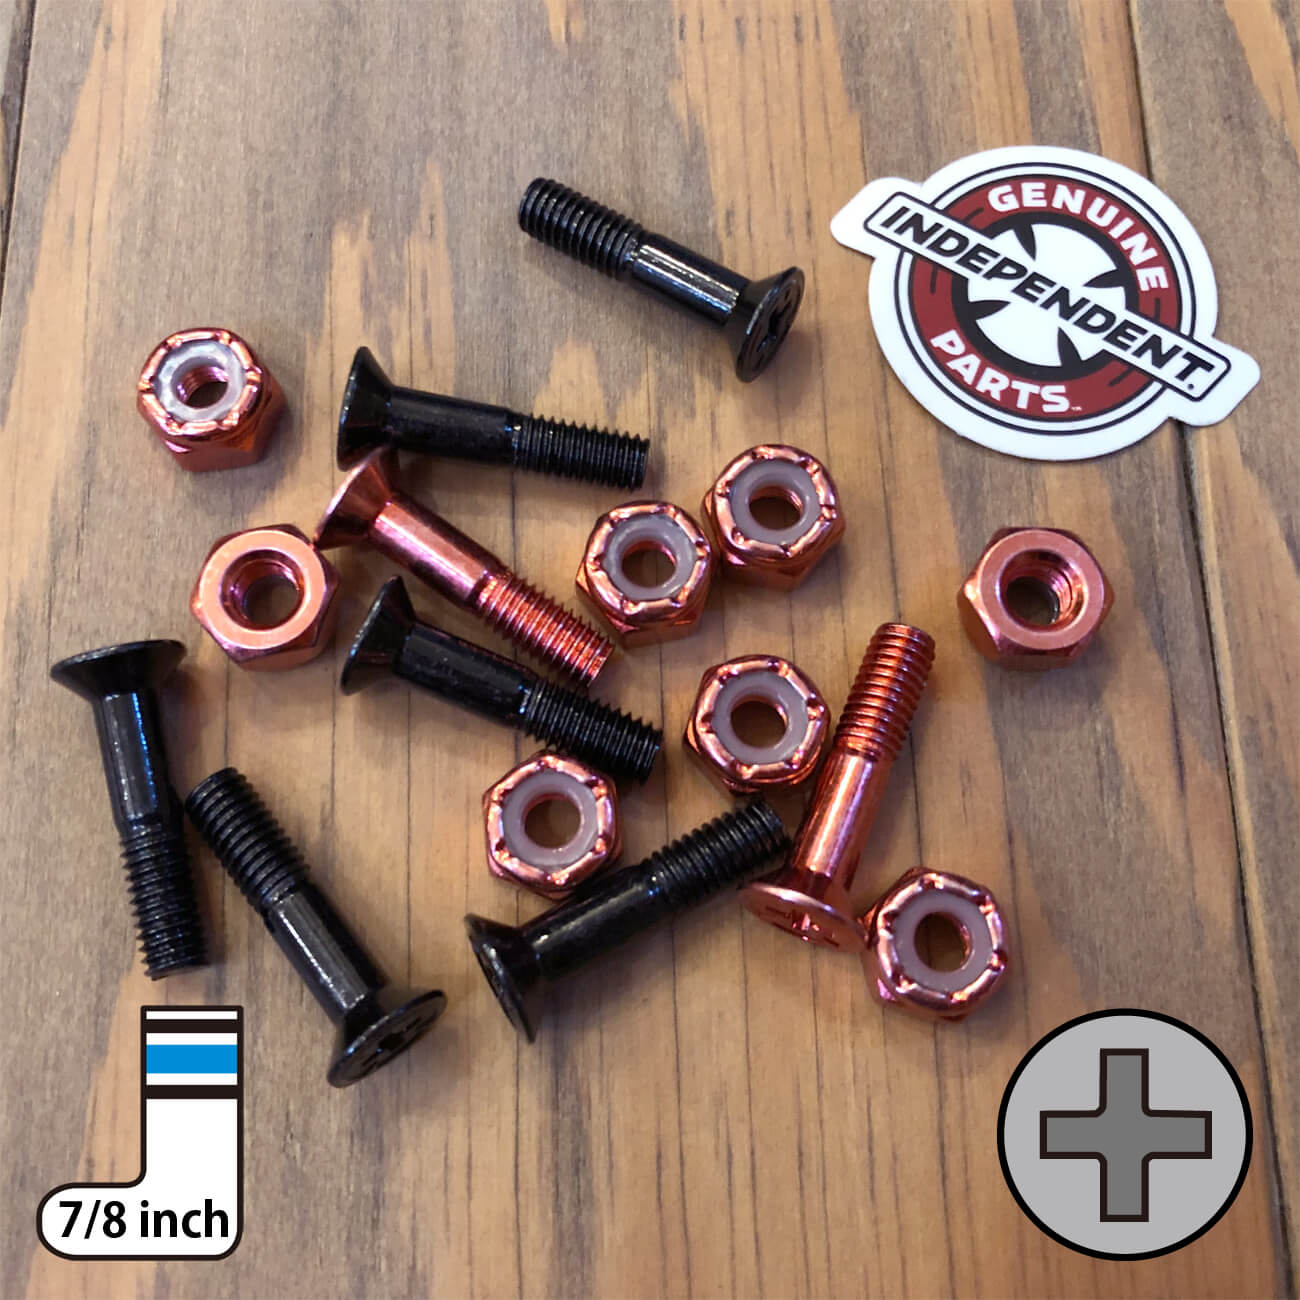 INDEPENDENT CROSS BOLTS 7/8inch RED PHILLIPS(プラス)